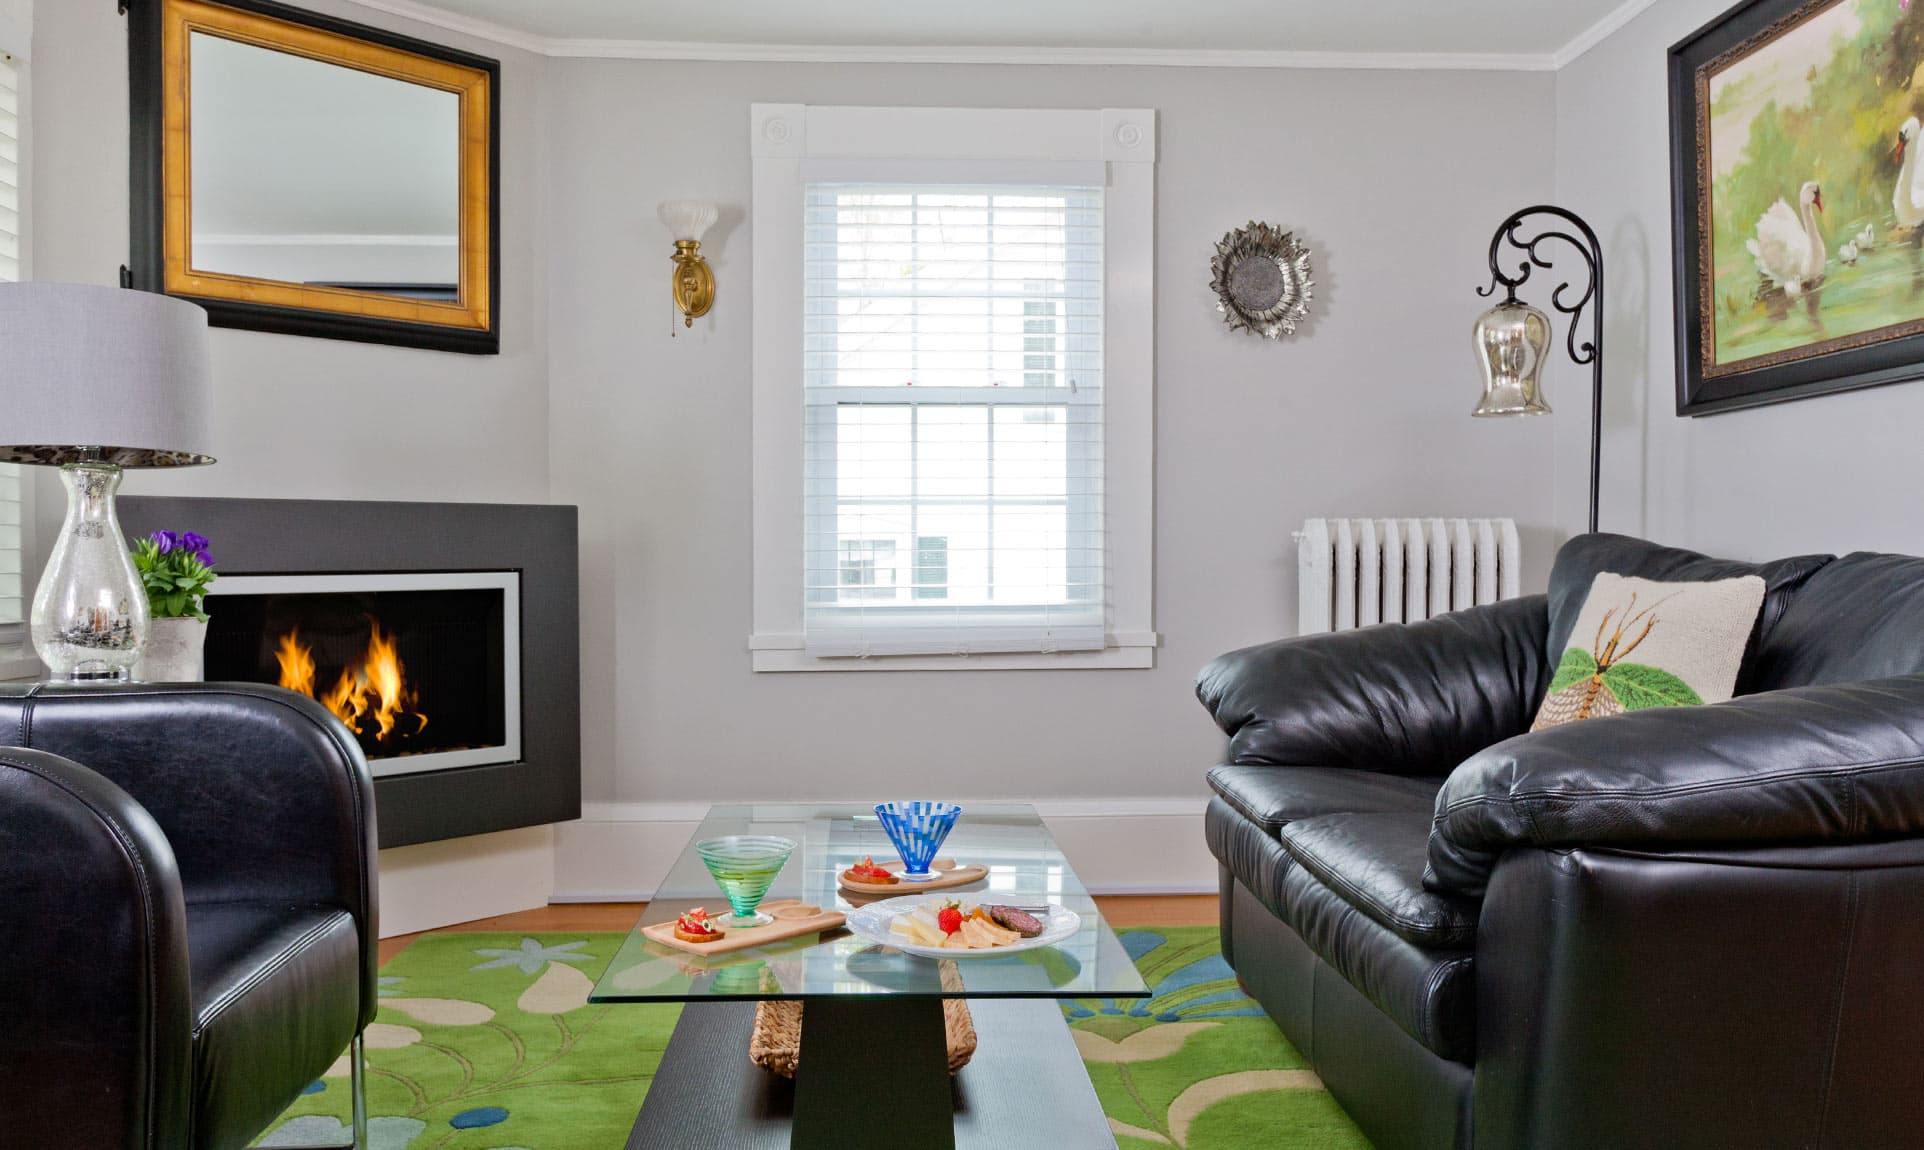 Living room with gas fireplace, couch, and leather chair